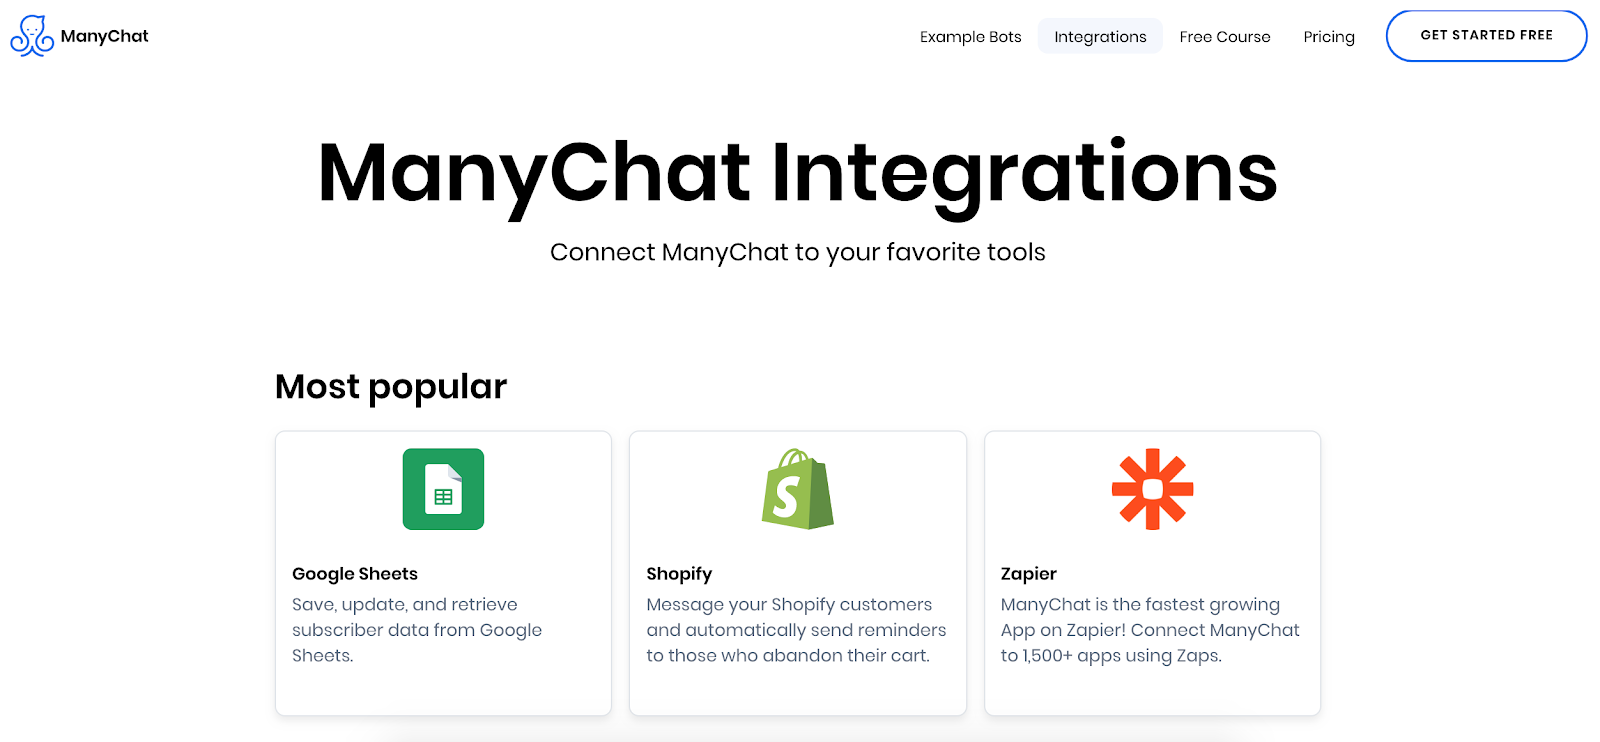 ManyChat integrations page